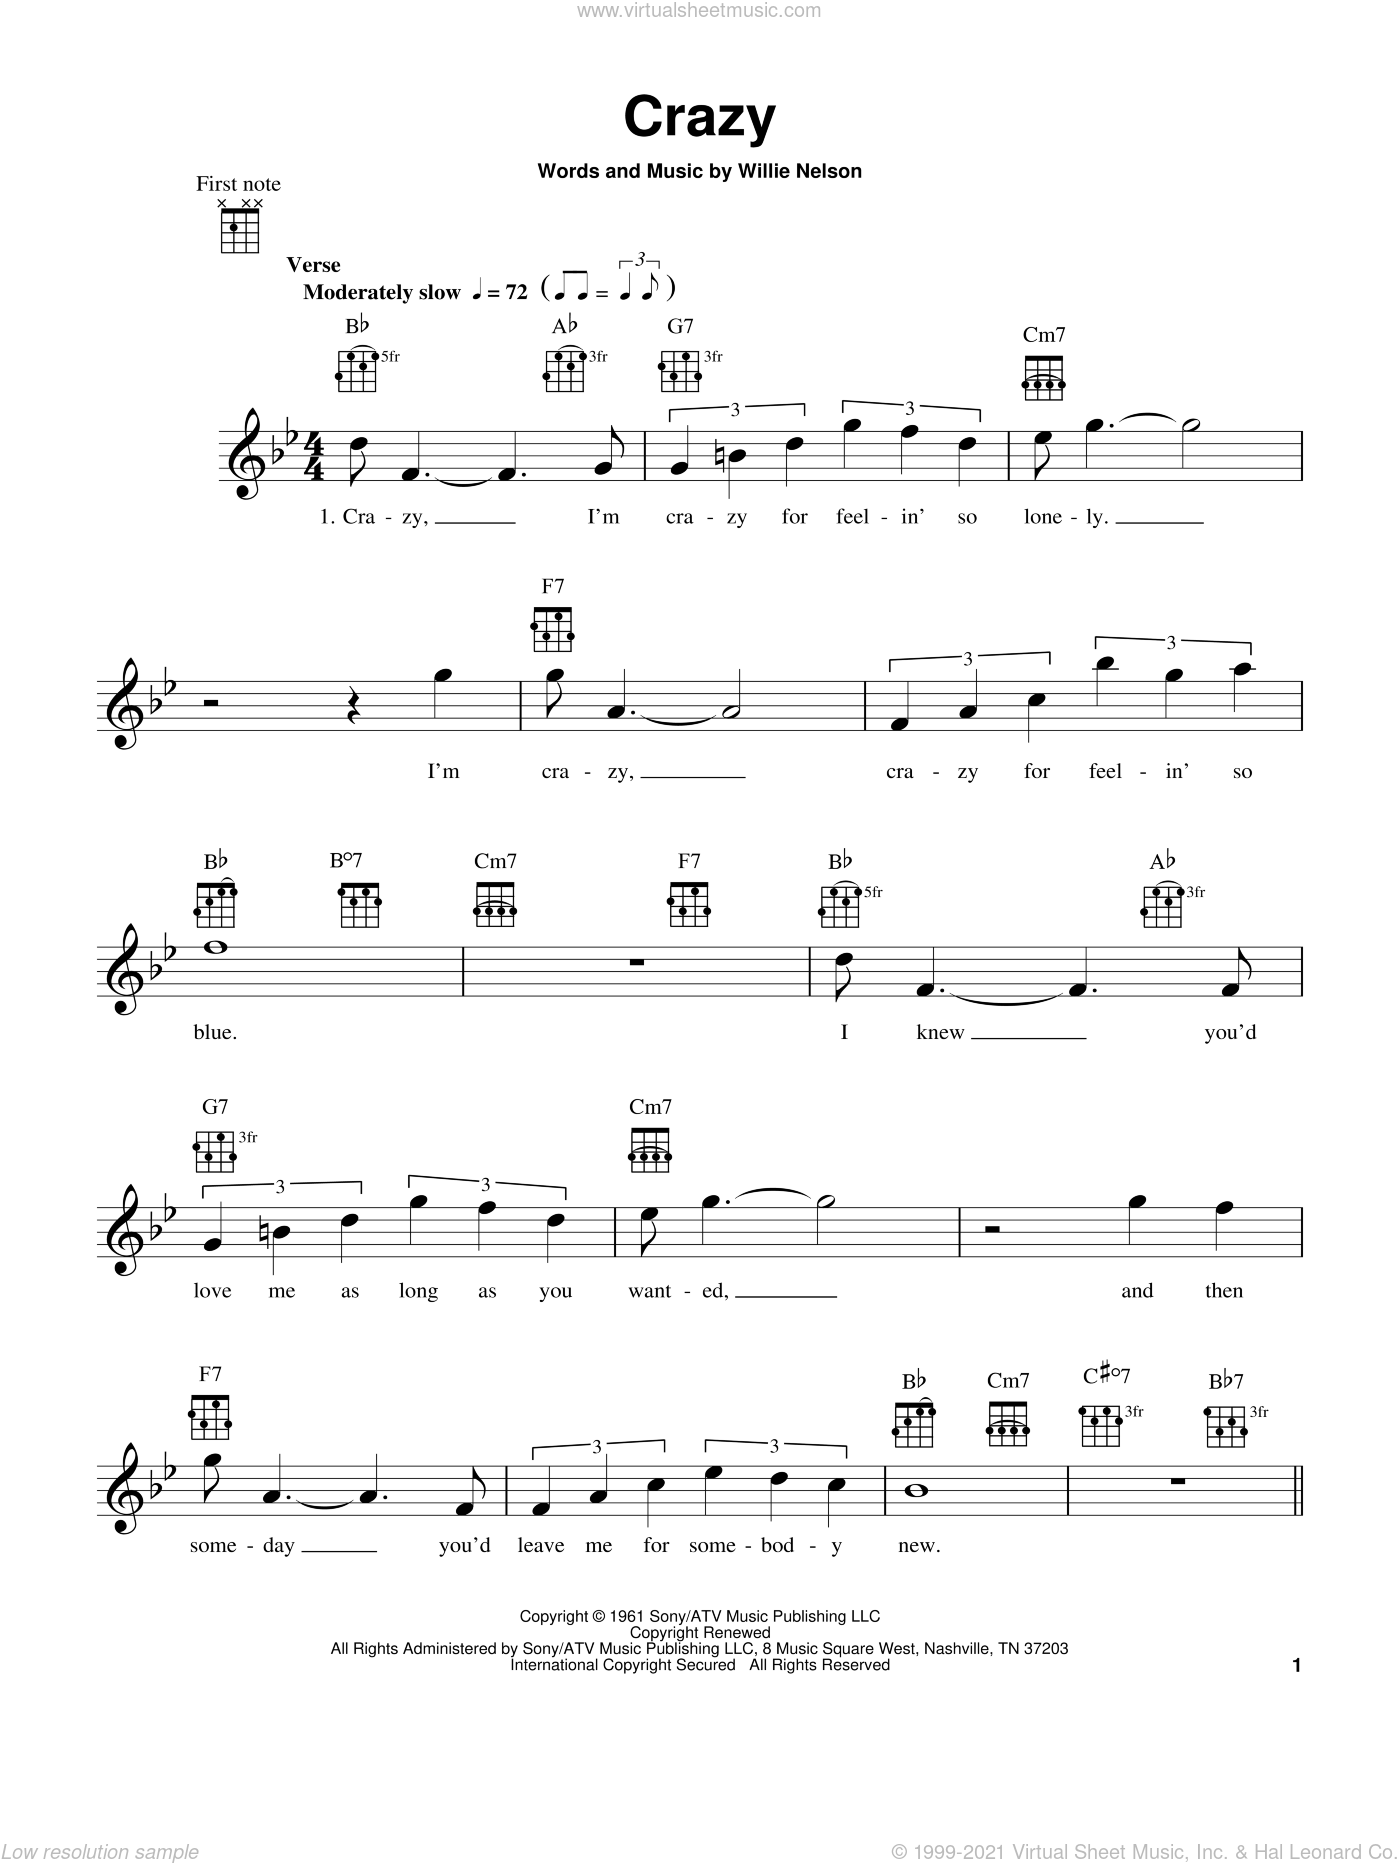 Crazy sheet music for ukulele by Willie Nelson